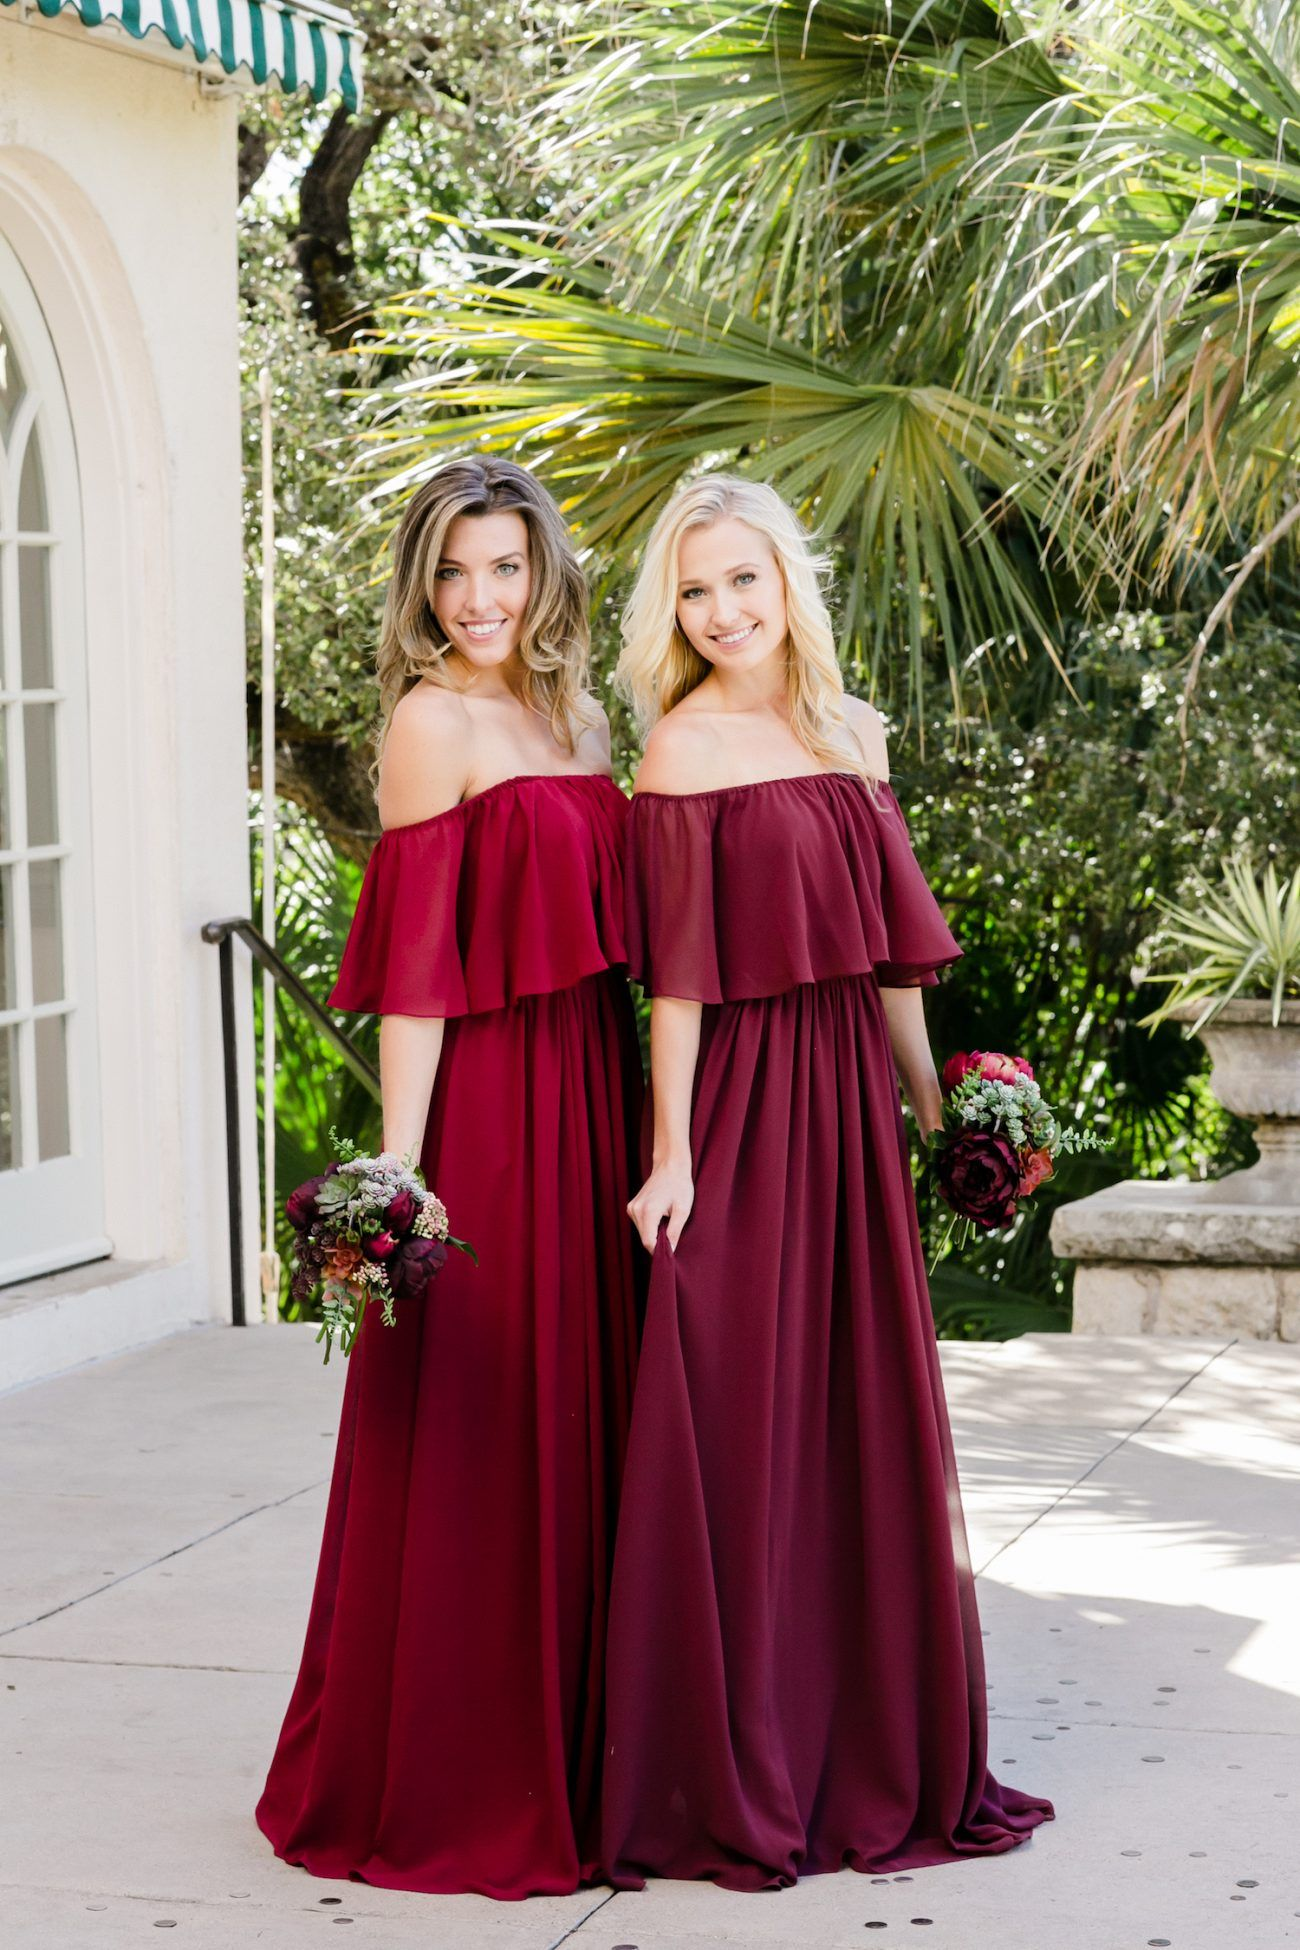 e1dcac9045 Stunning off-the-shoulder bridesmaid dresses in gorgeous berry colors from @ Revelry! #revelry #bridesmaid #bridesmaiddresses